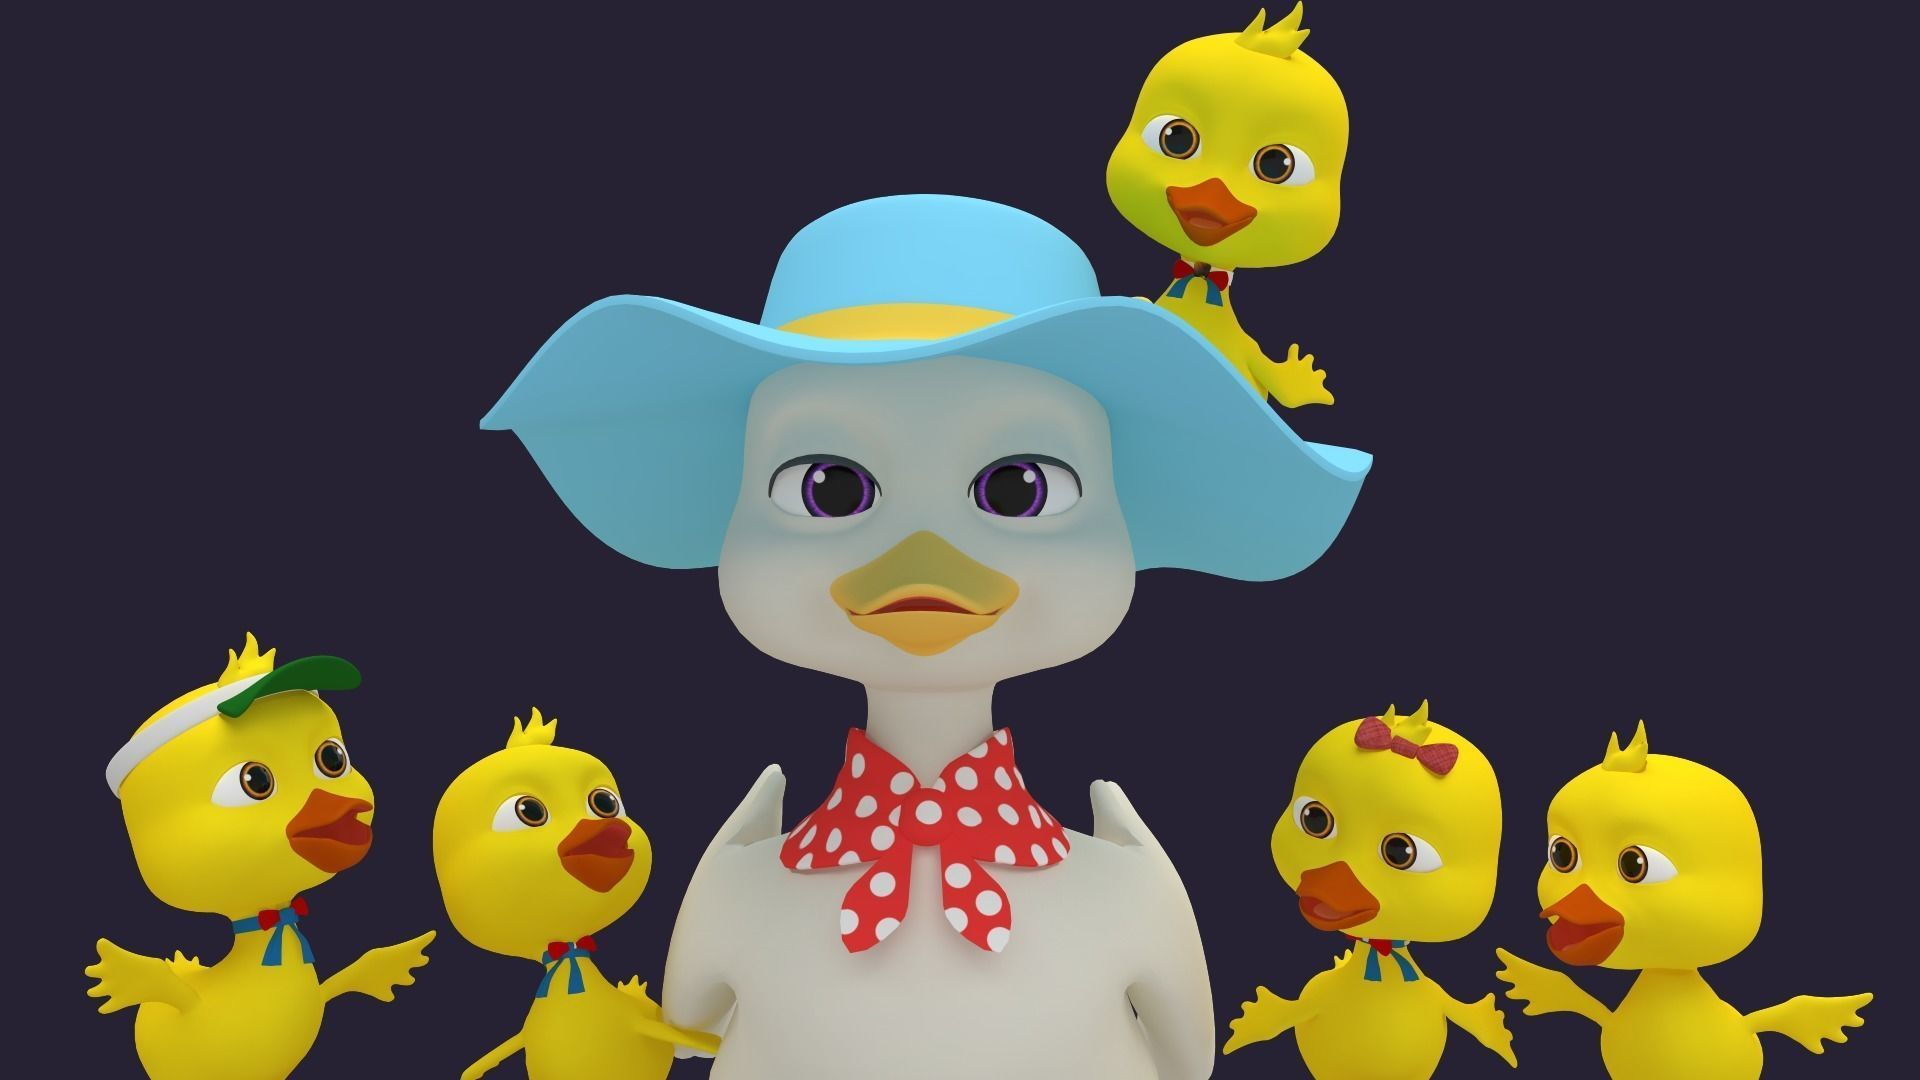 Asset - Cartoons - Character - Duck - Hight Poly